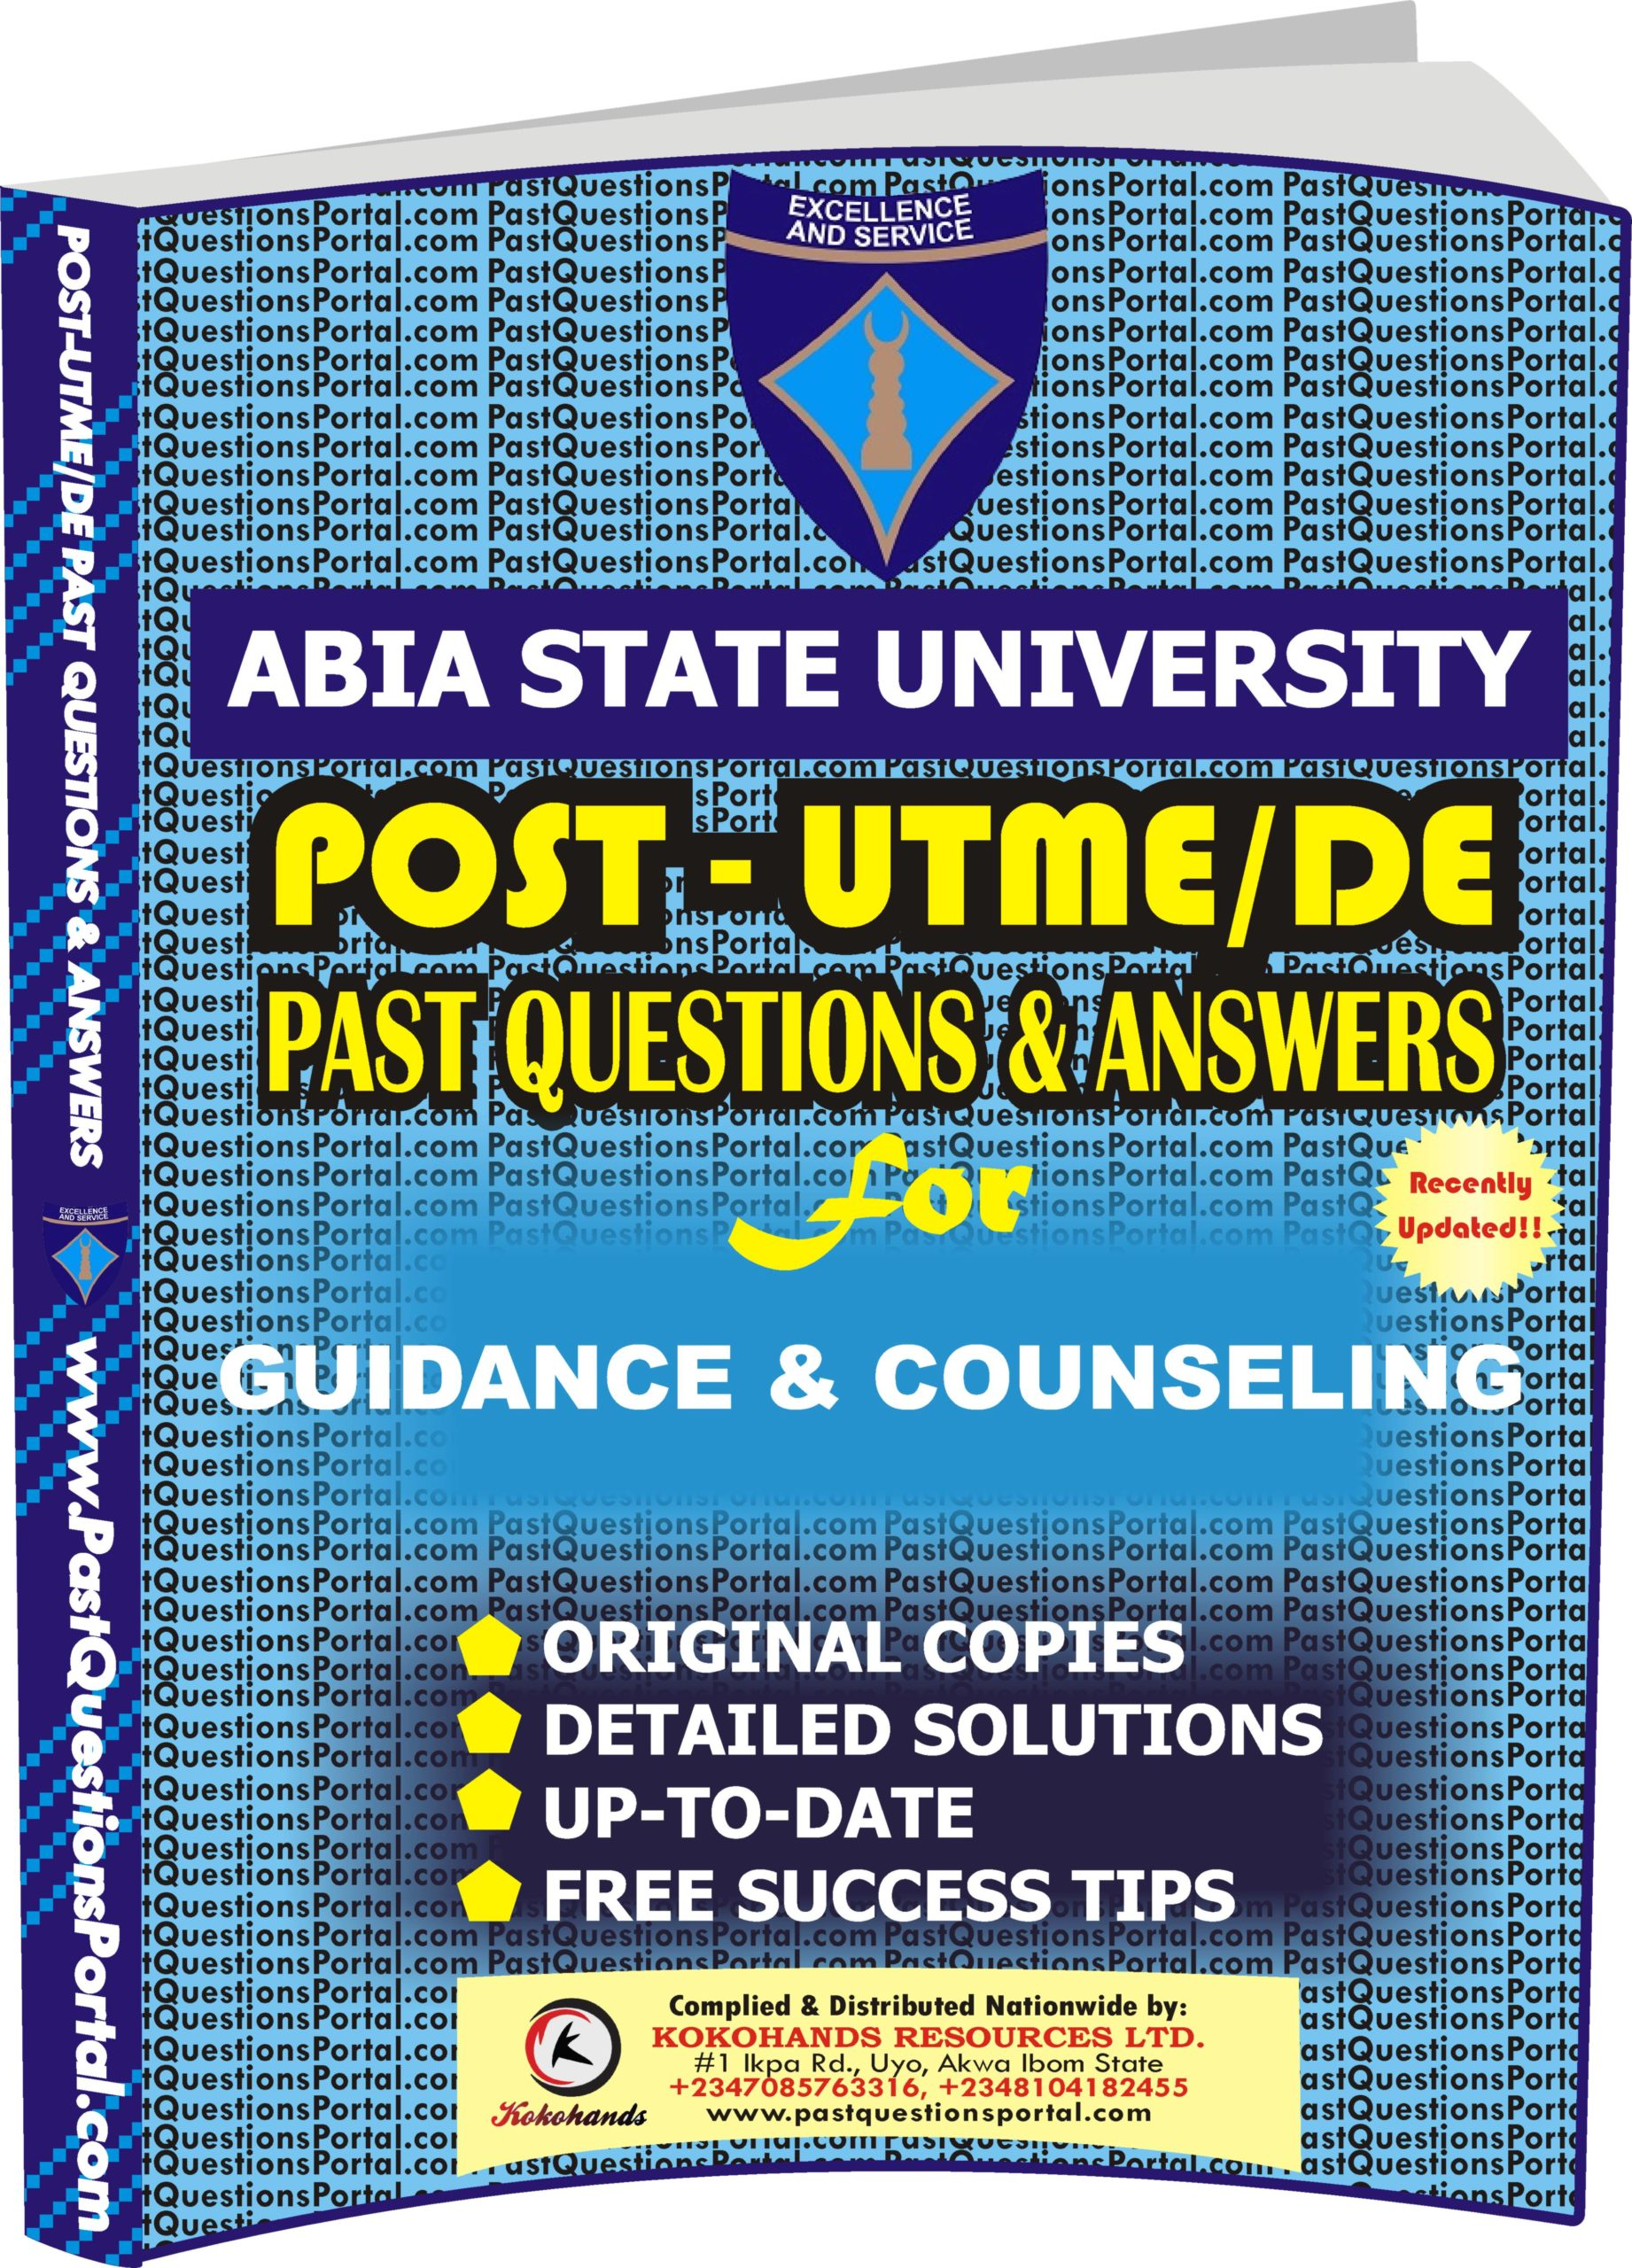 ABSU Post UTME Past Questions for GUIDANCE & COUNSELING